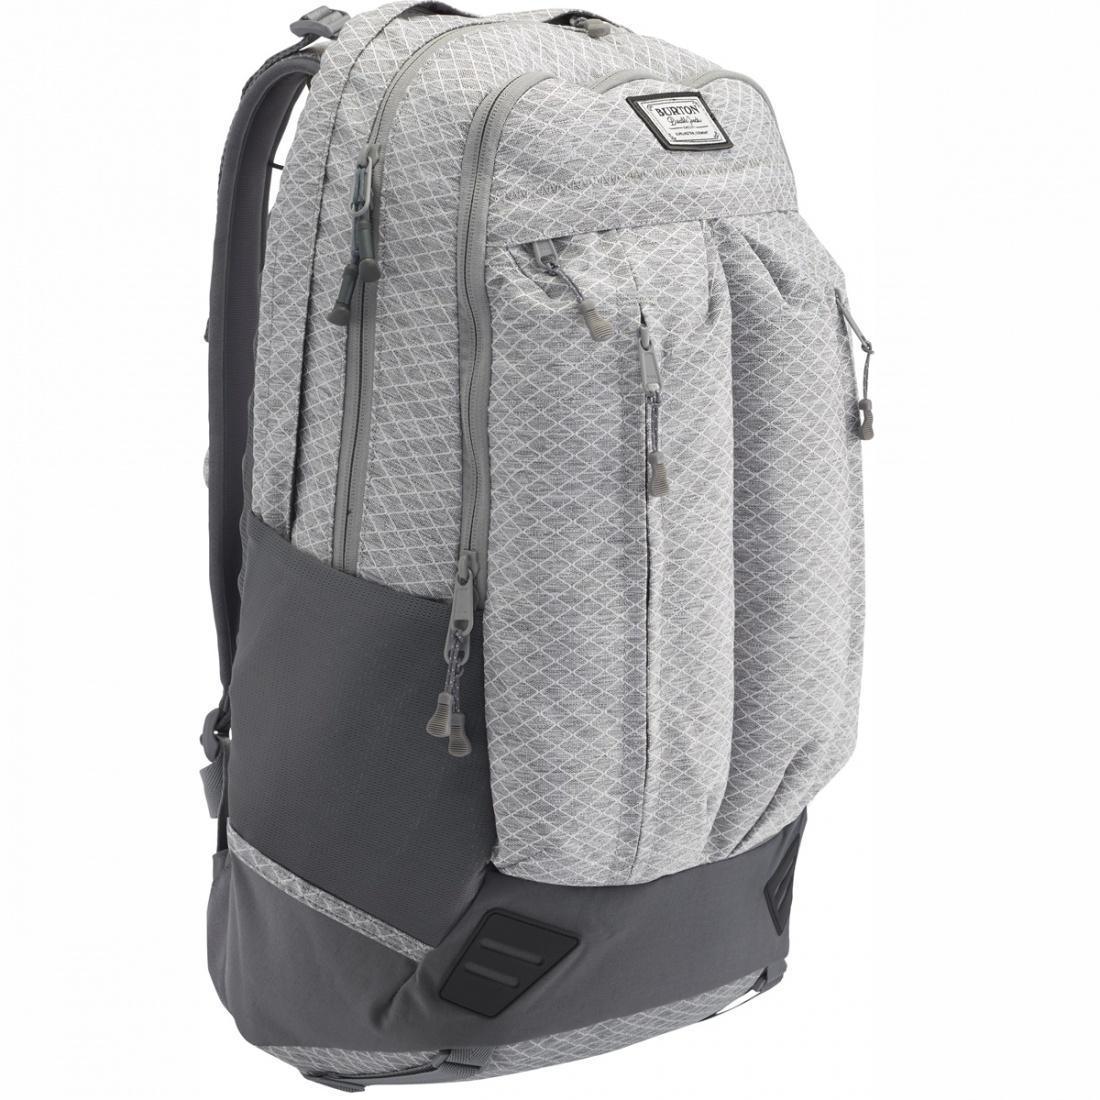 Burton Рюкзак Burton Bravo Backpack burton рюкзак treble yell